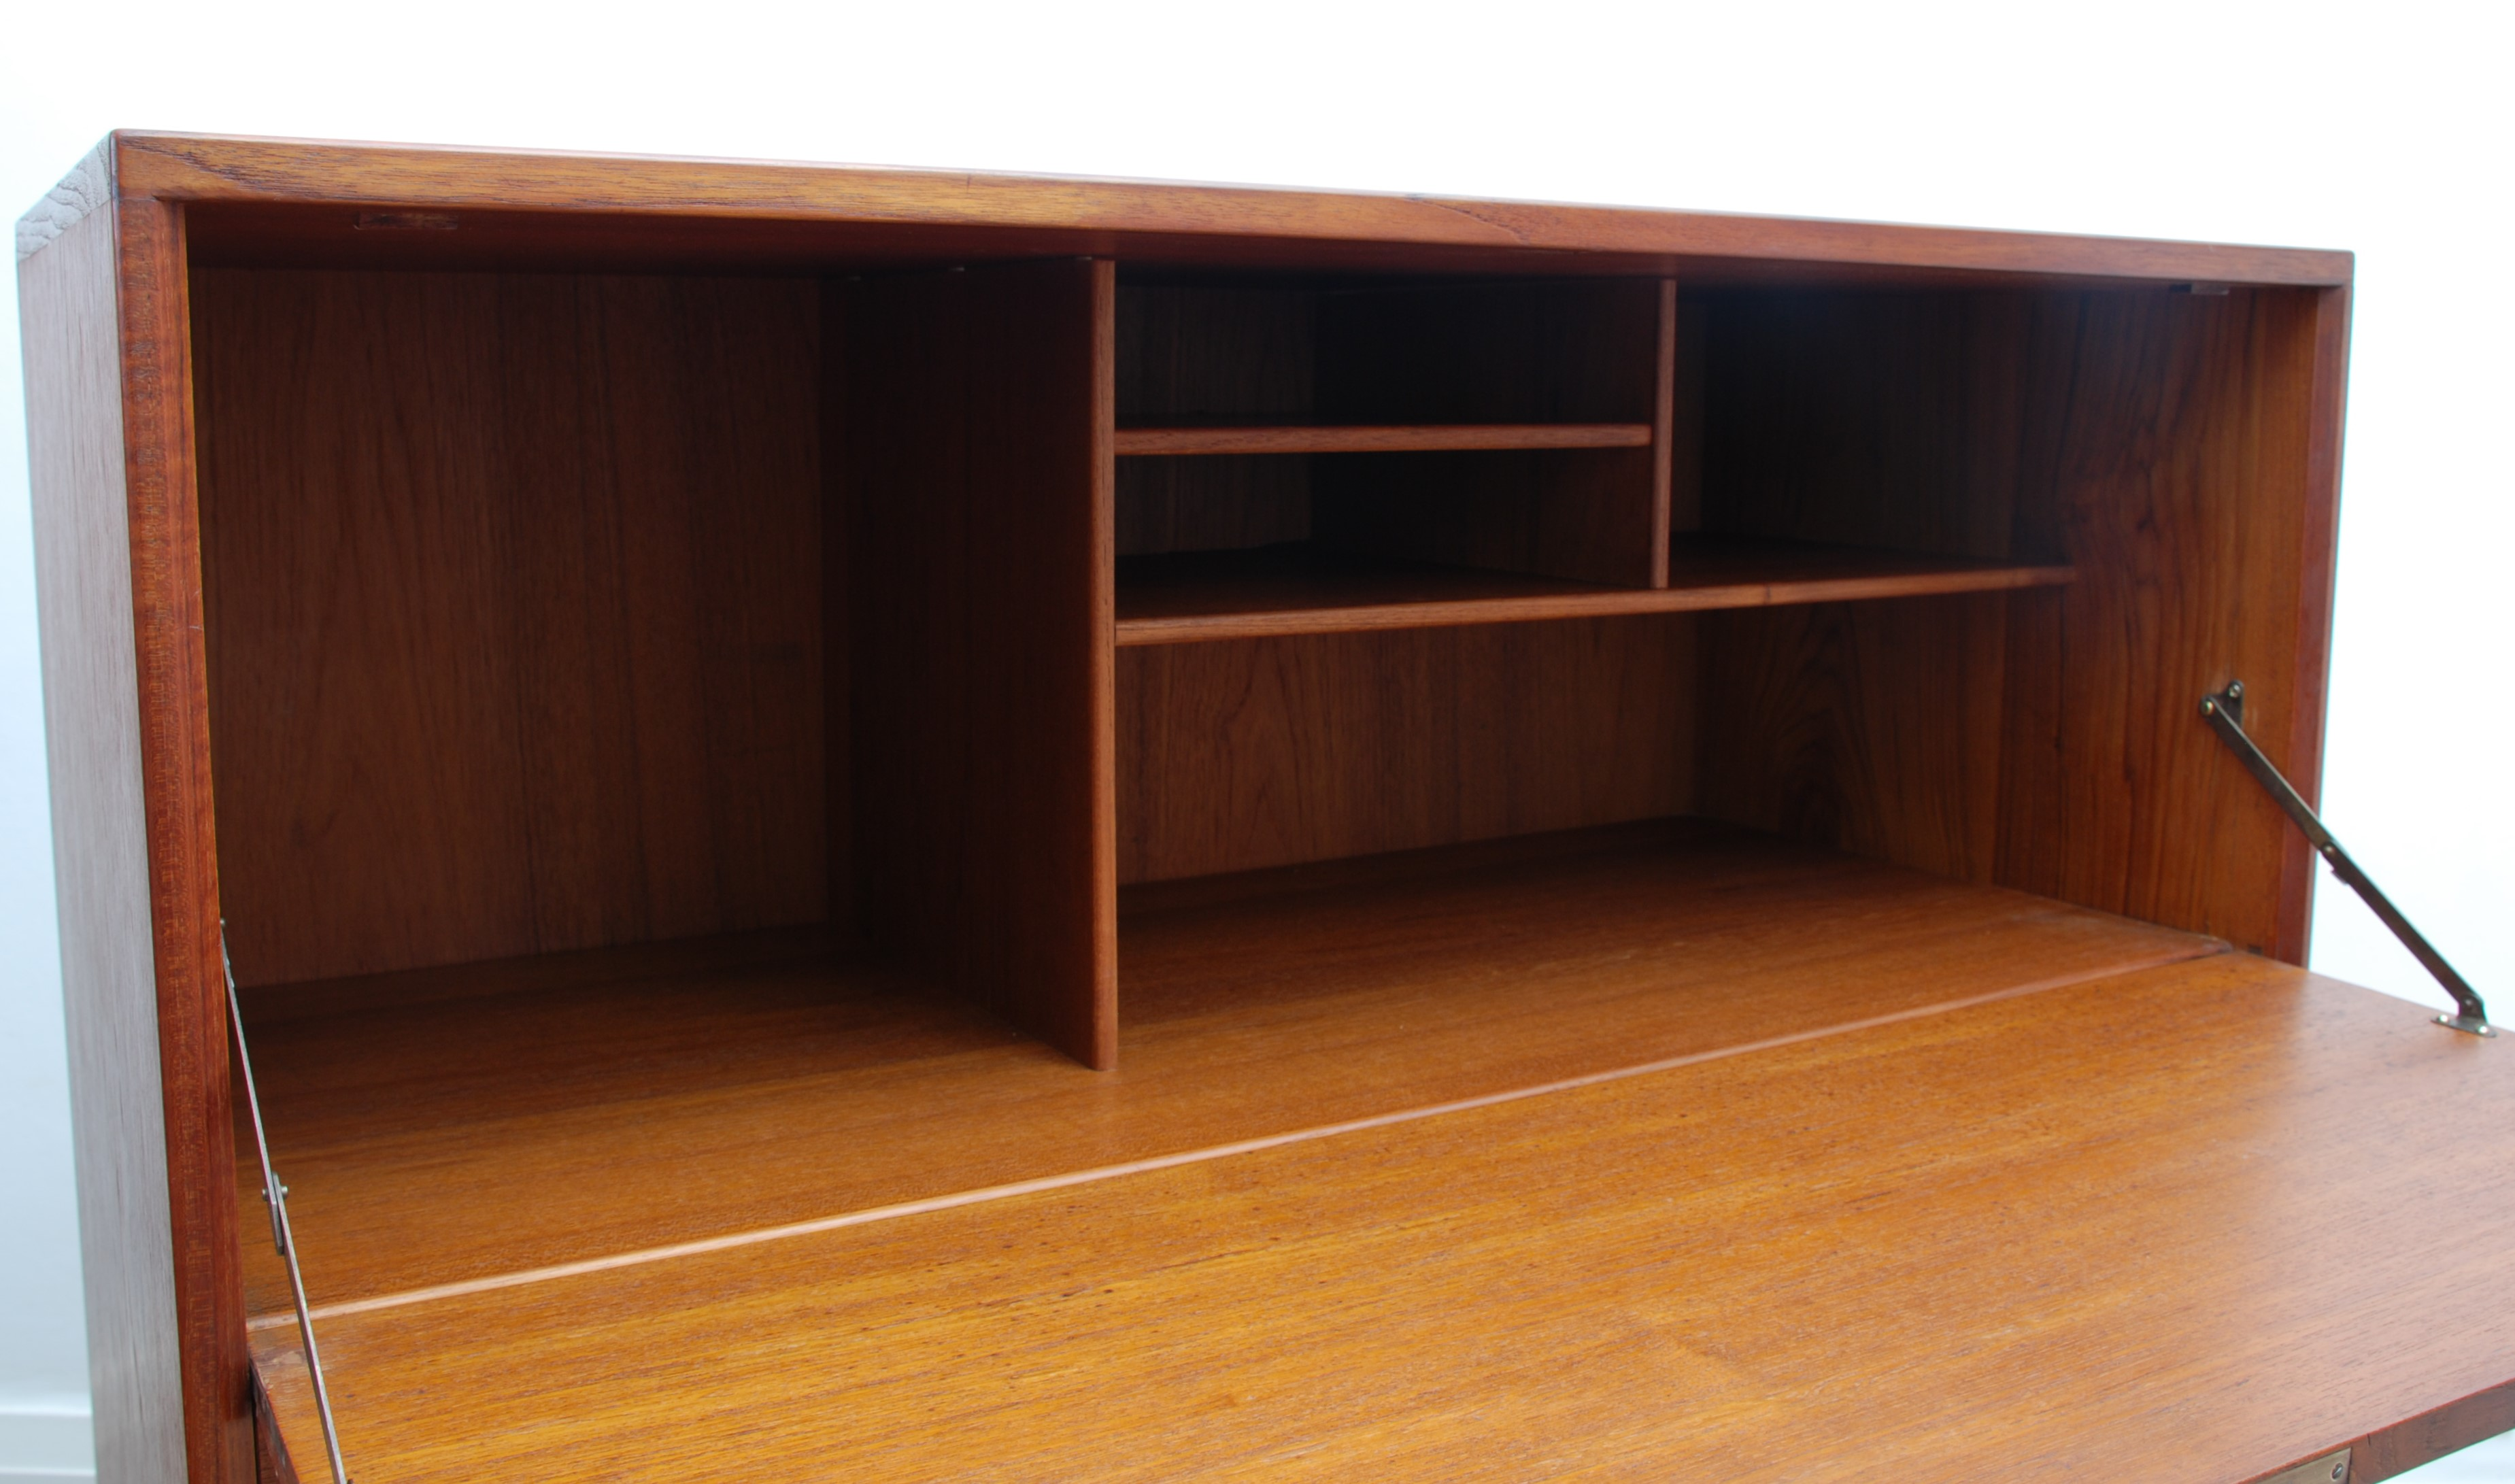 Drop down Door and Drawers Cabinet